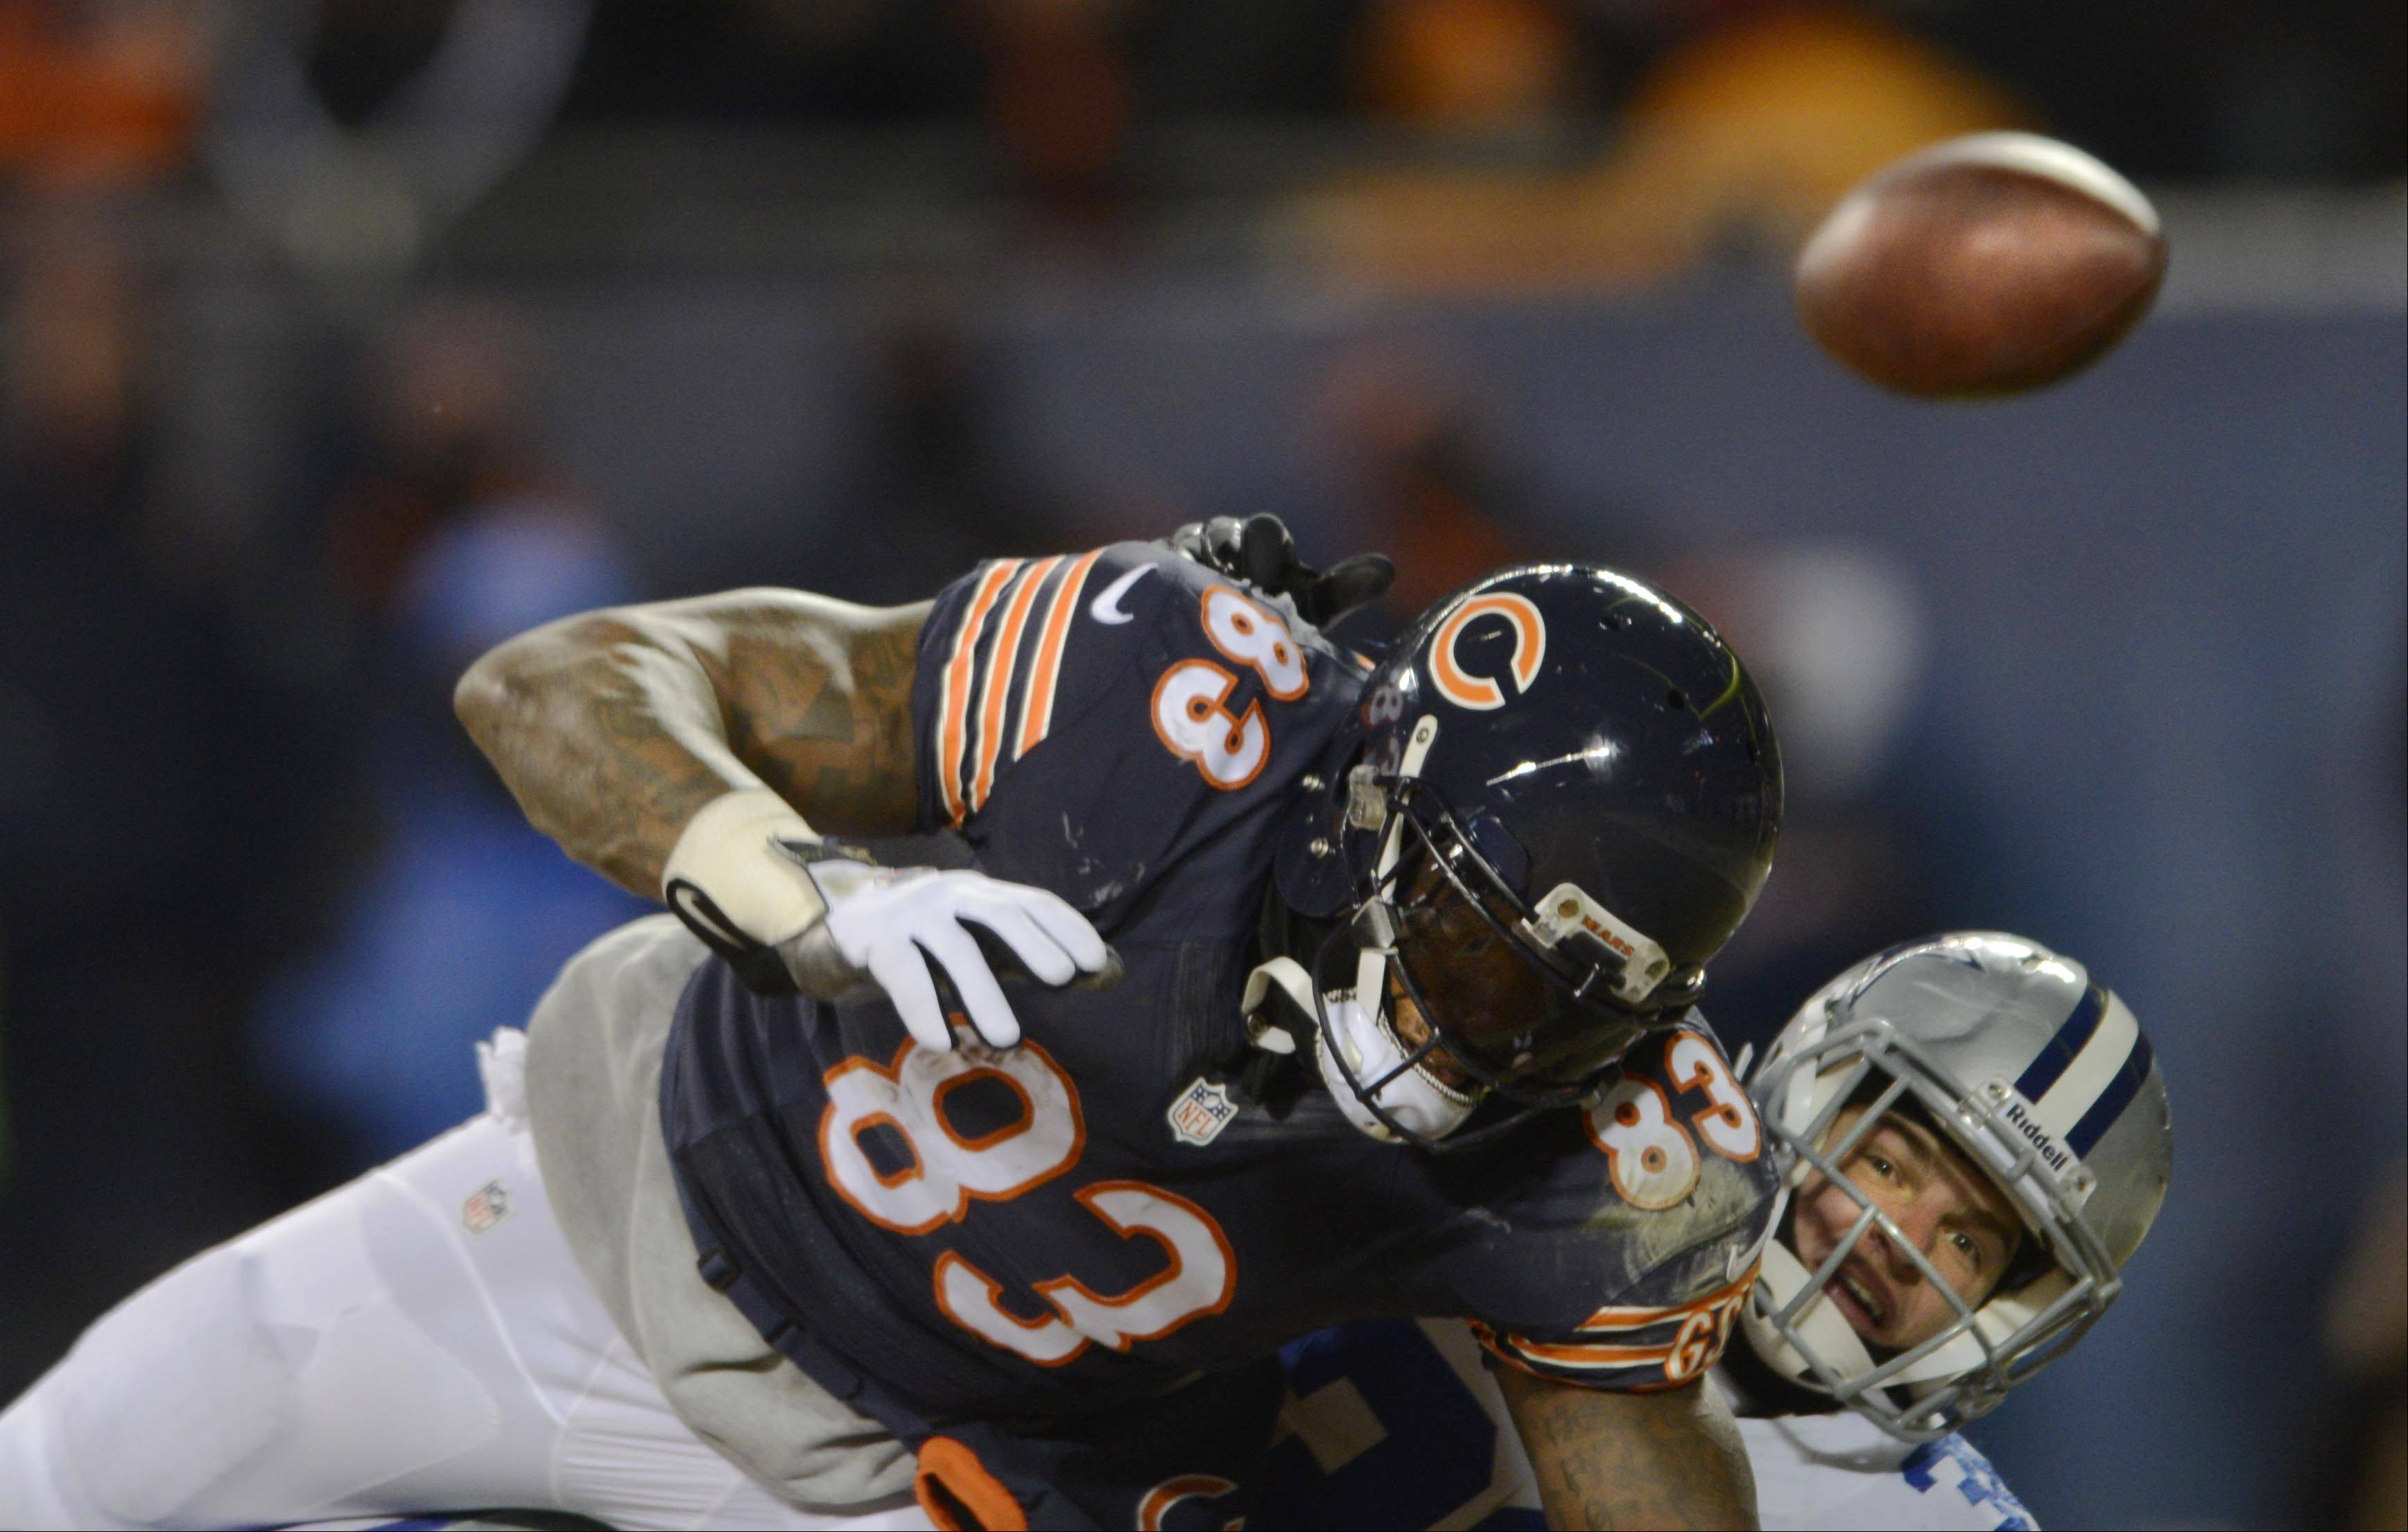 Chicago Bears tight end Martellus Bennett tries for a pass as Dallas Cowboys strong safety Jeff Heath defends.